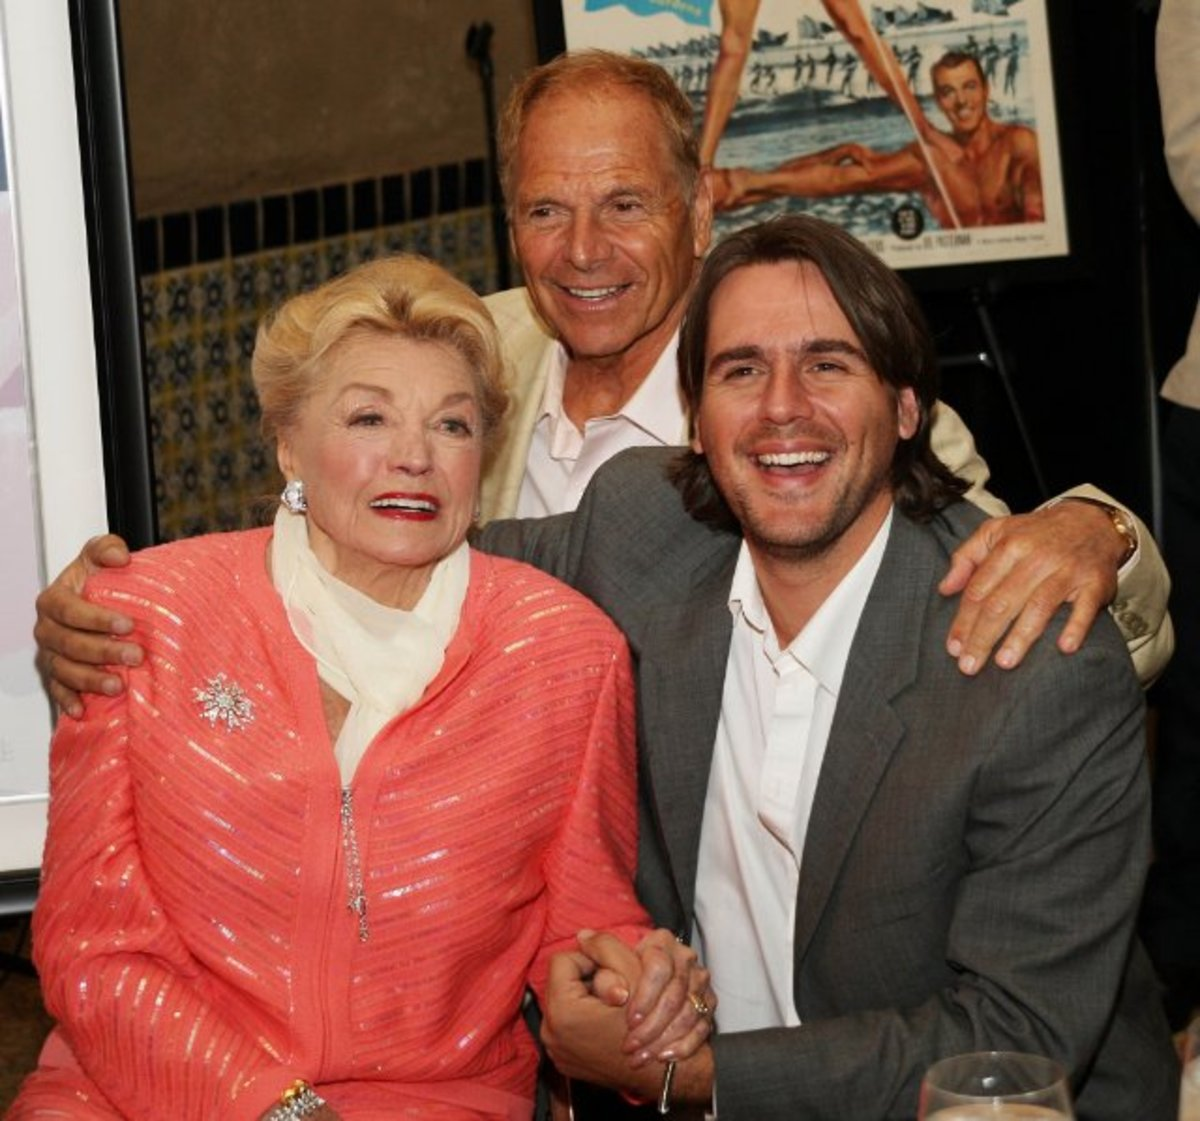 Actress Esther Williams, her husband Edward Bell and her stepson attend the 87th annual installation and awards luncheon for the Hollywood Chamber of Commerce at the Hollywood Roosevelt Hotel on April 9, 2008 in Hollywood, California.